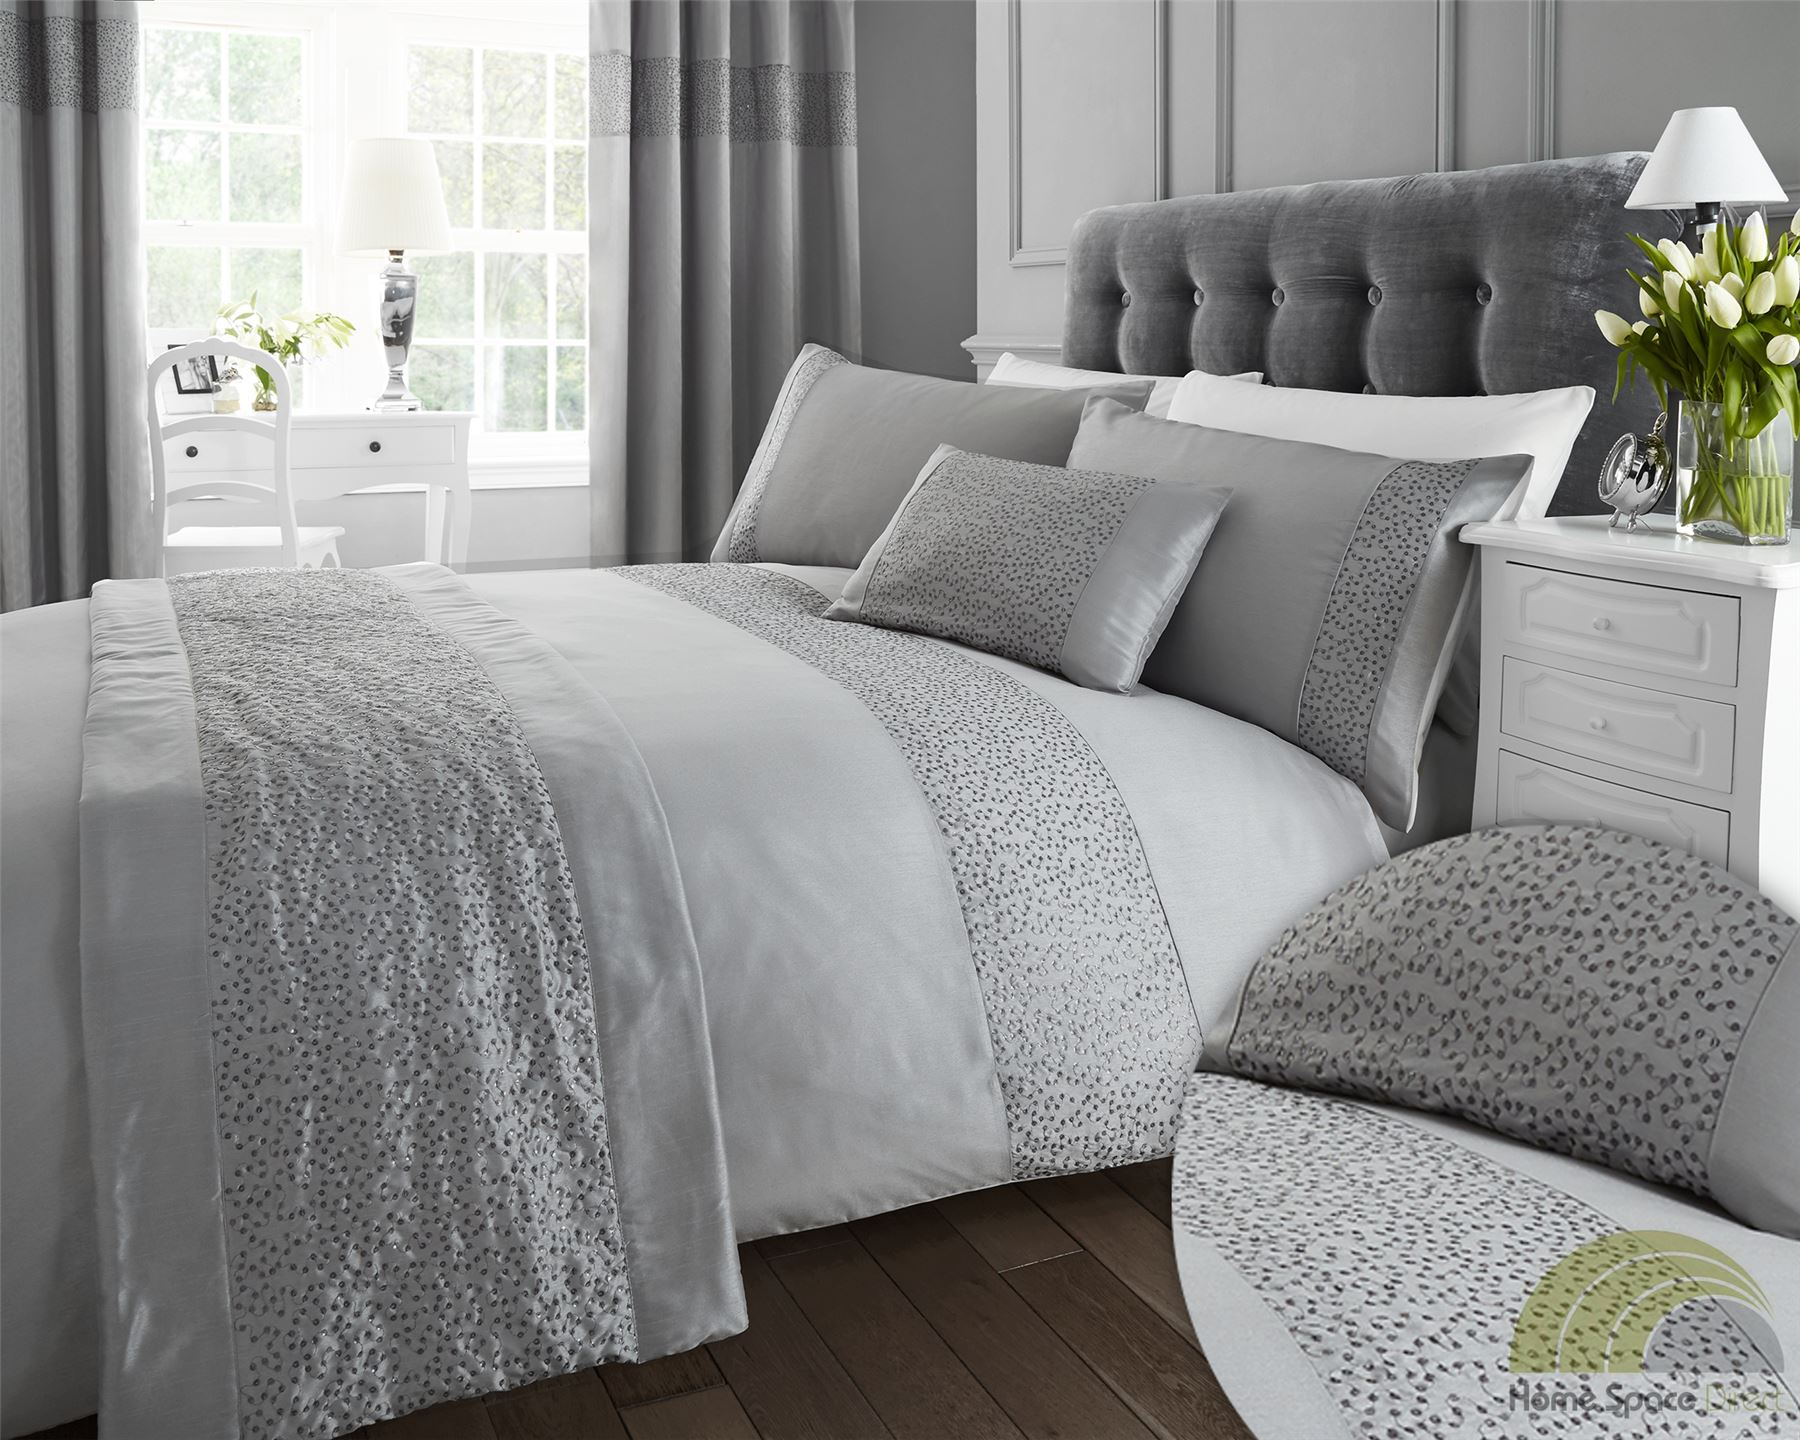 Quilt Duvet Cover Amp Pillowcase Bedding Bed Sets Sequined 3